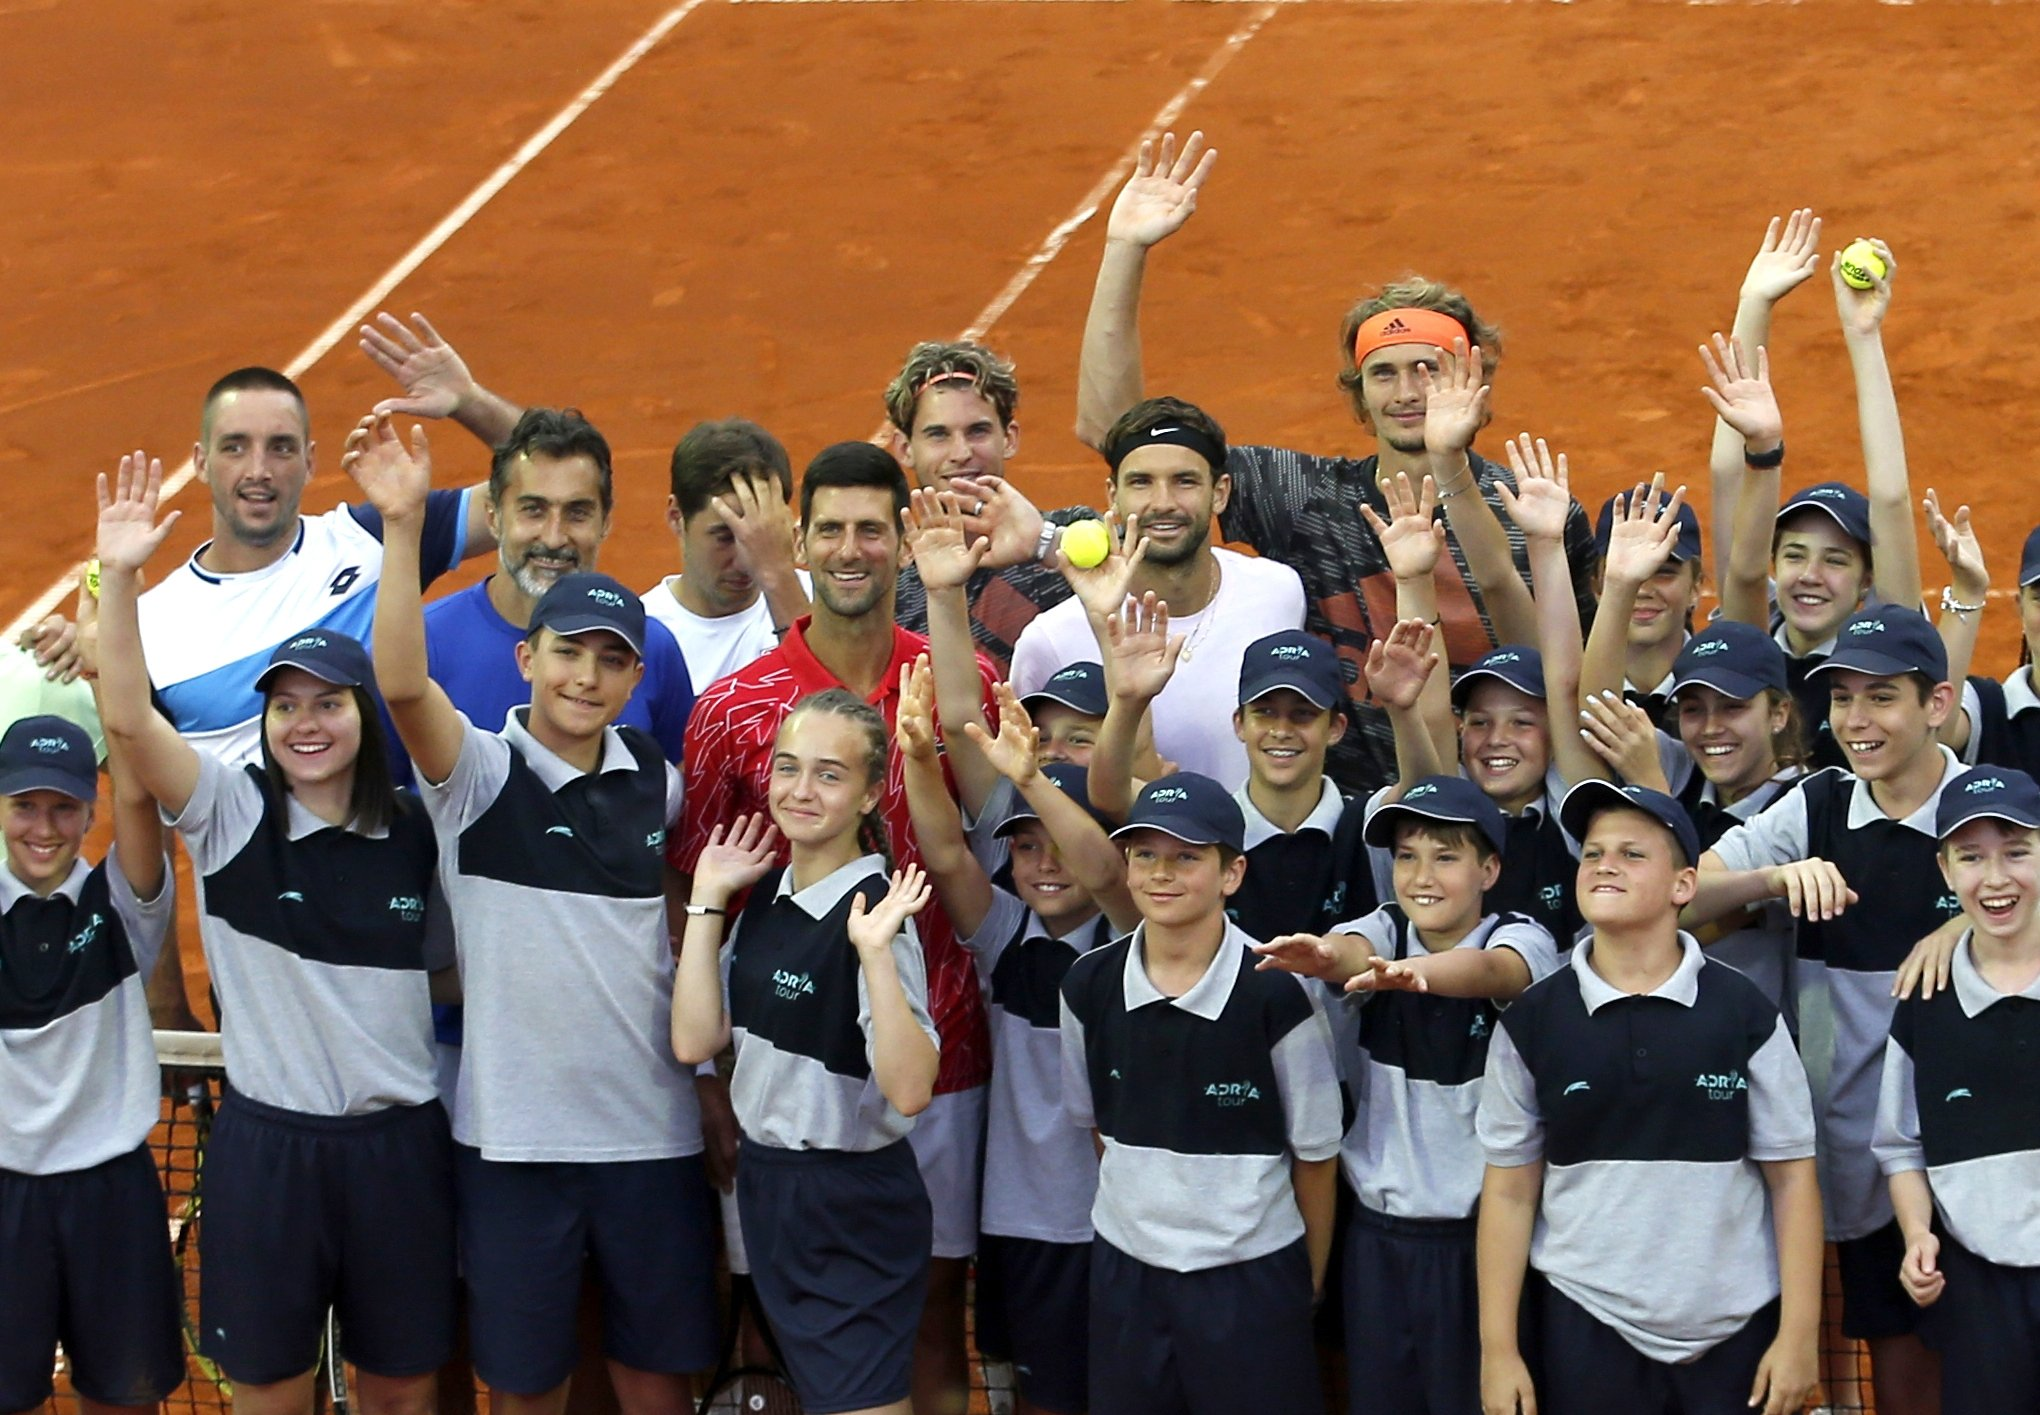 Serbia's Novak Djokovic (C) poses with volunteers and players during the Adria Tour charity tournament, in Belgrade Serbia, June 12, 2020. (AP Photo)